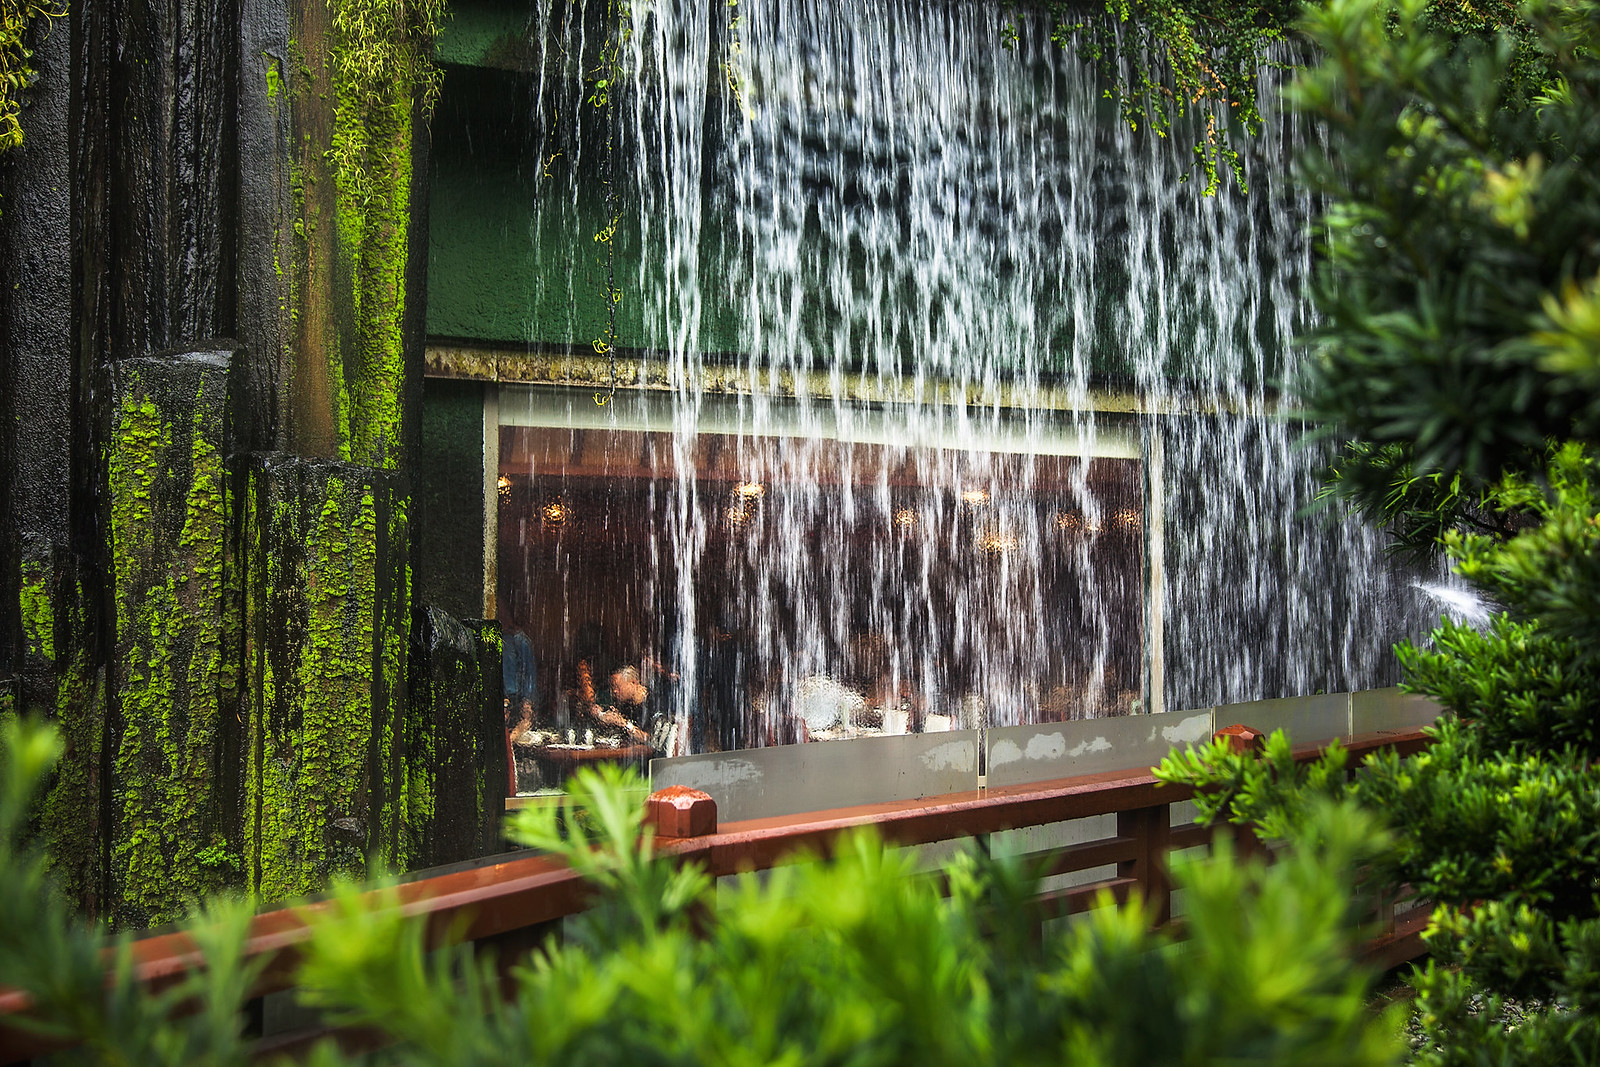 restaurant under a waterfall